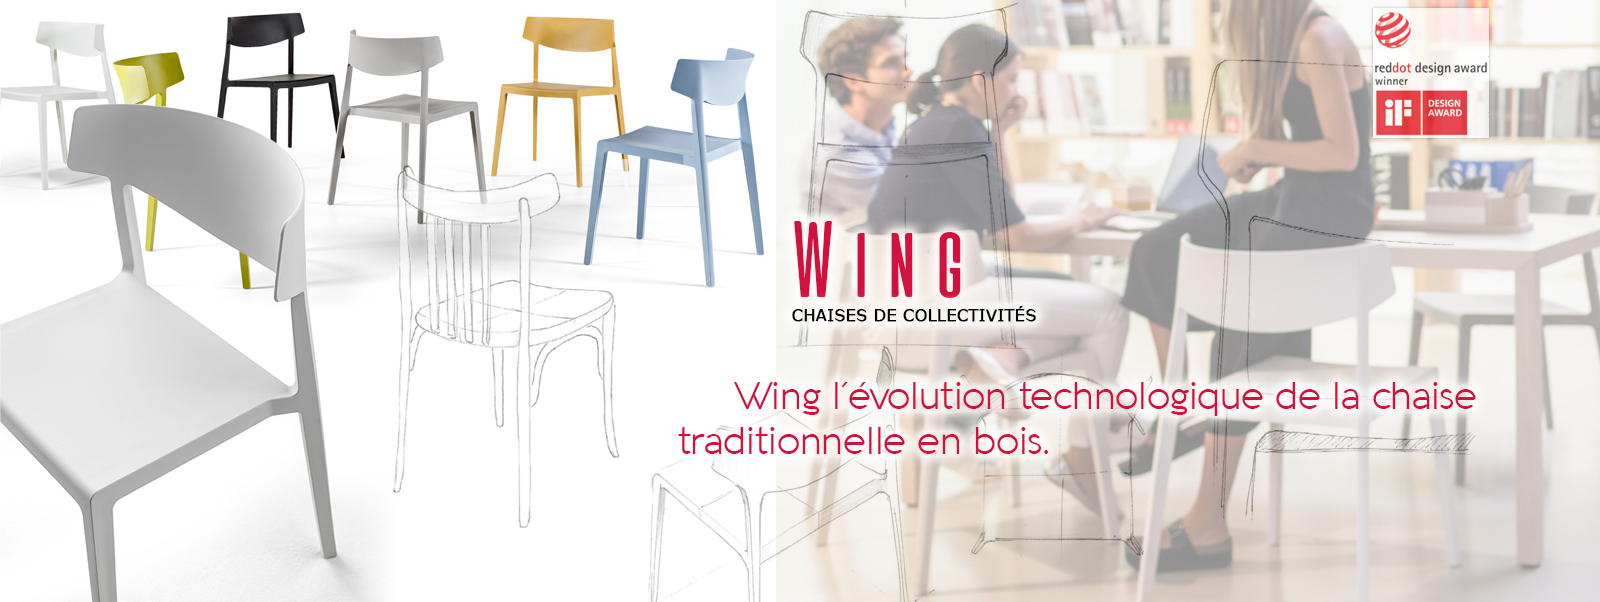 wing_chaises_2